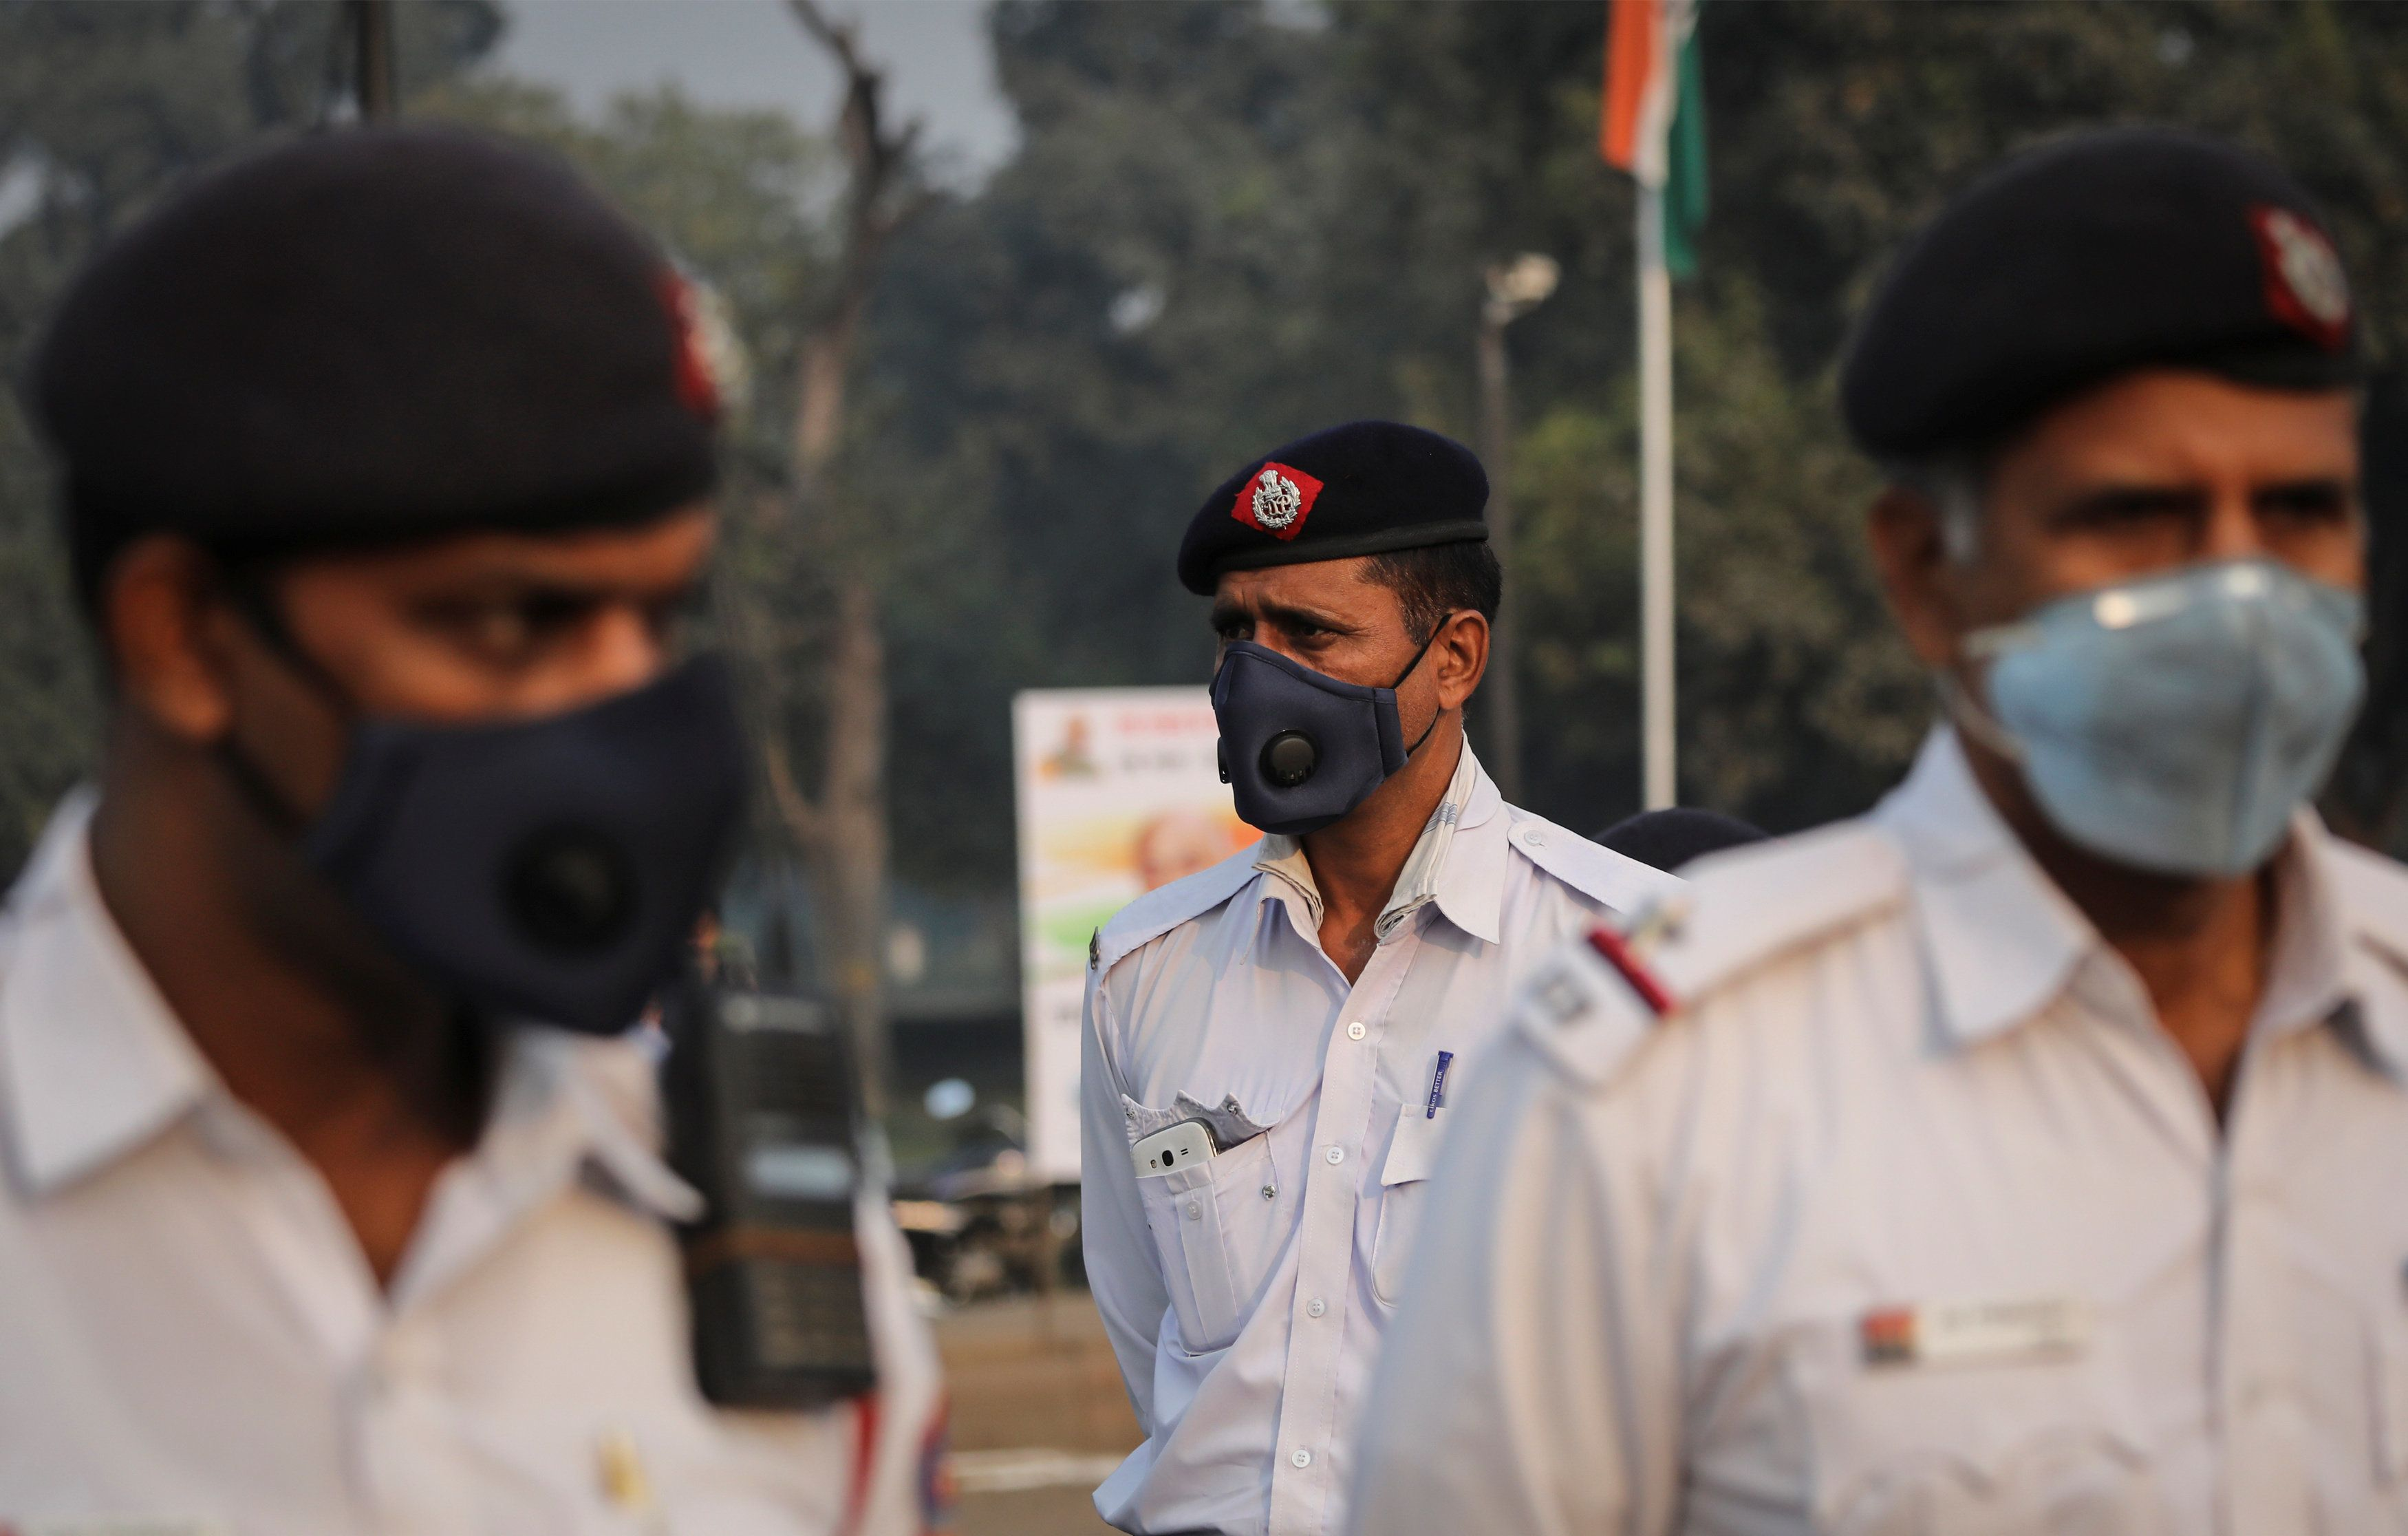 New Delhi faces risky air pollution level